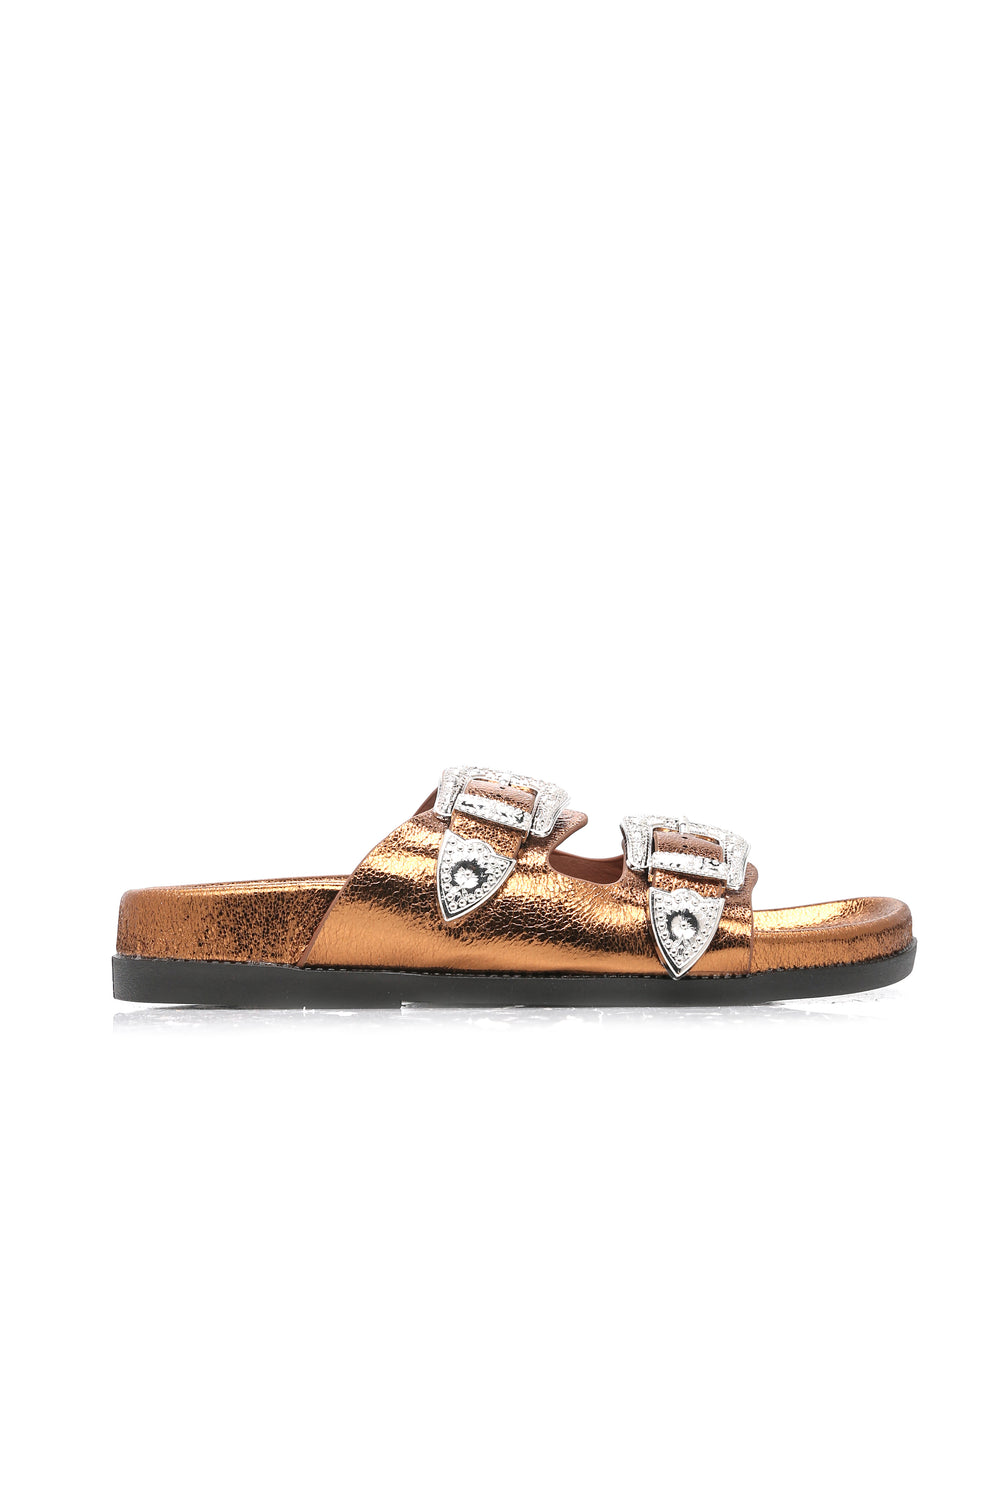 Fun And Games Buckle Sandal - Bronze